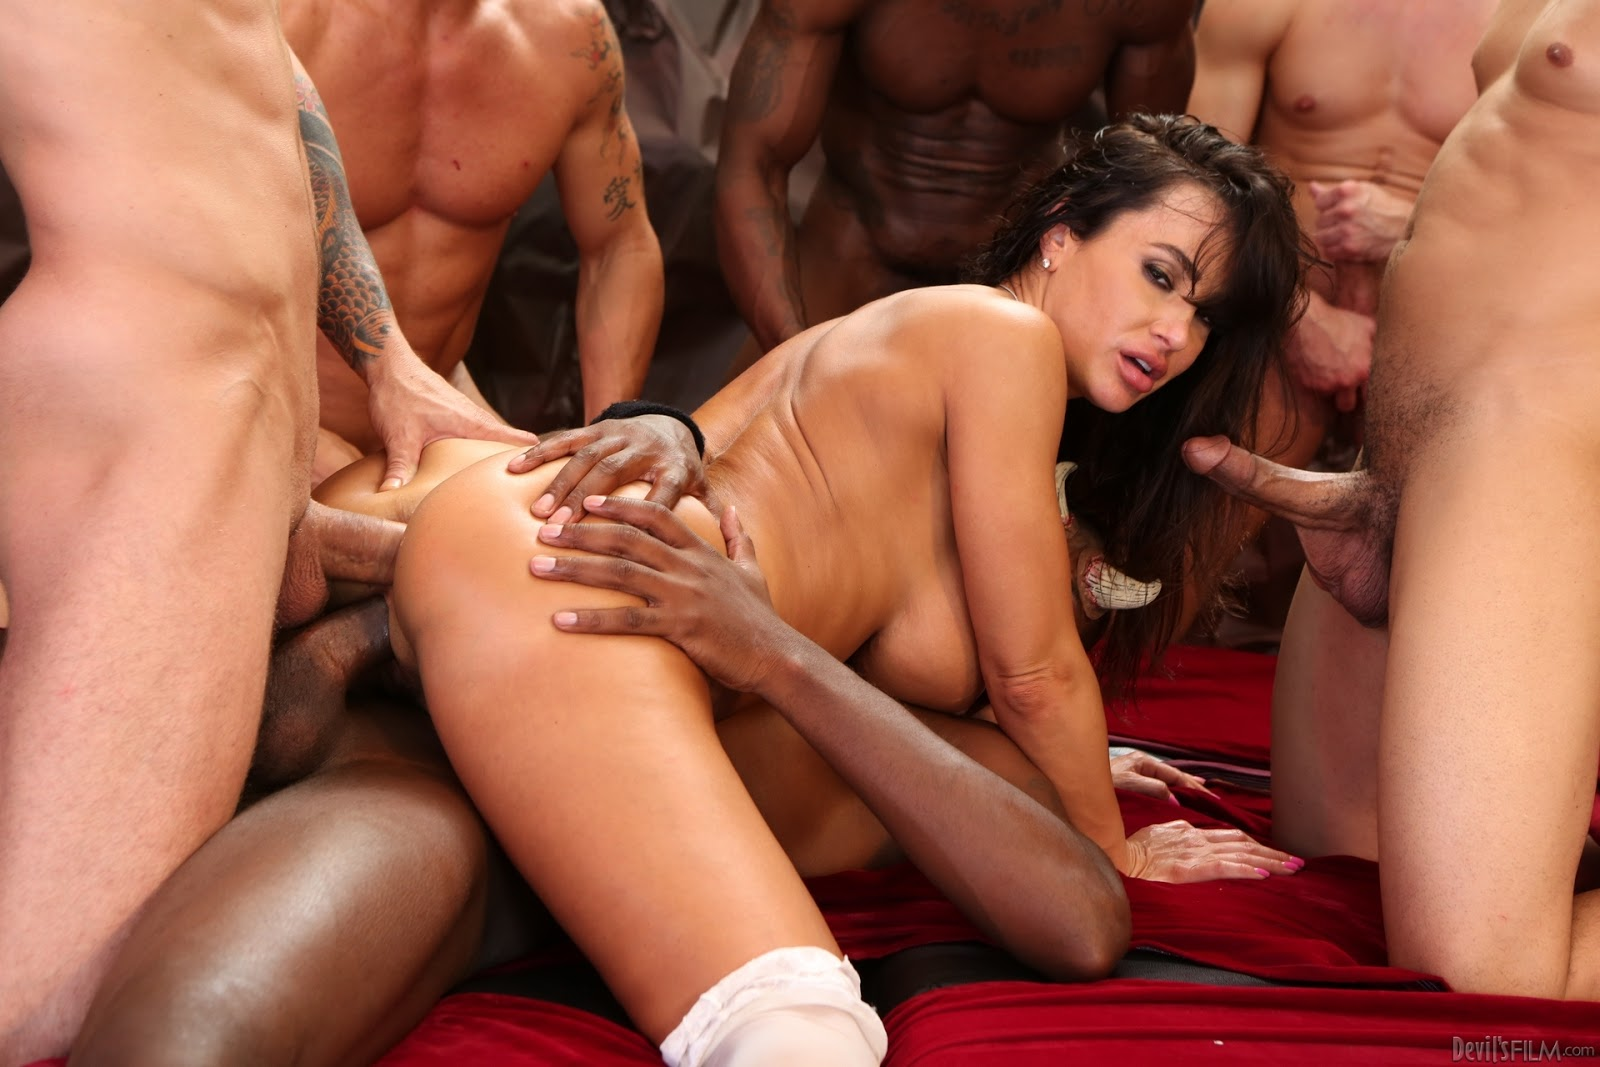 gang-bang-orgy-sex-big-black-cock-in-mouth